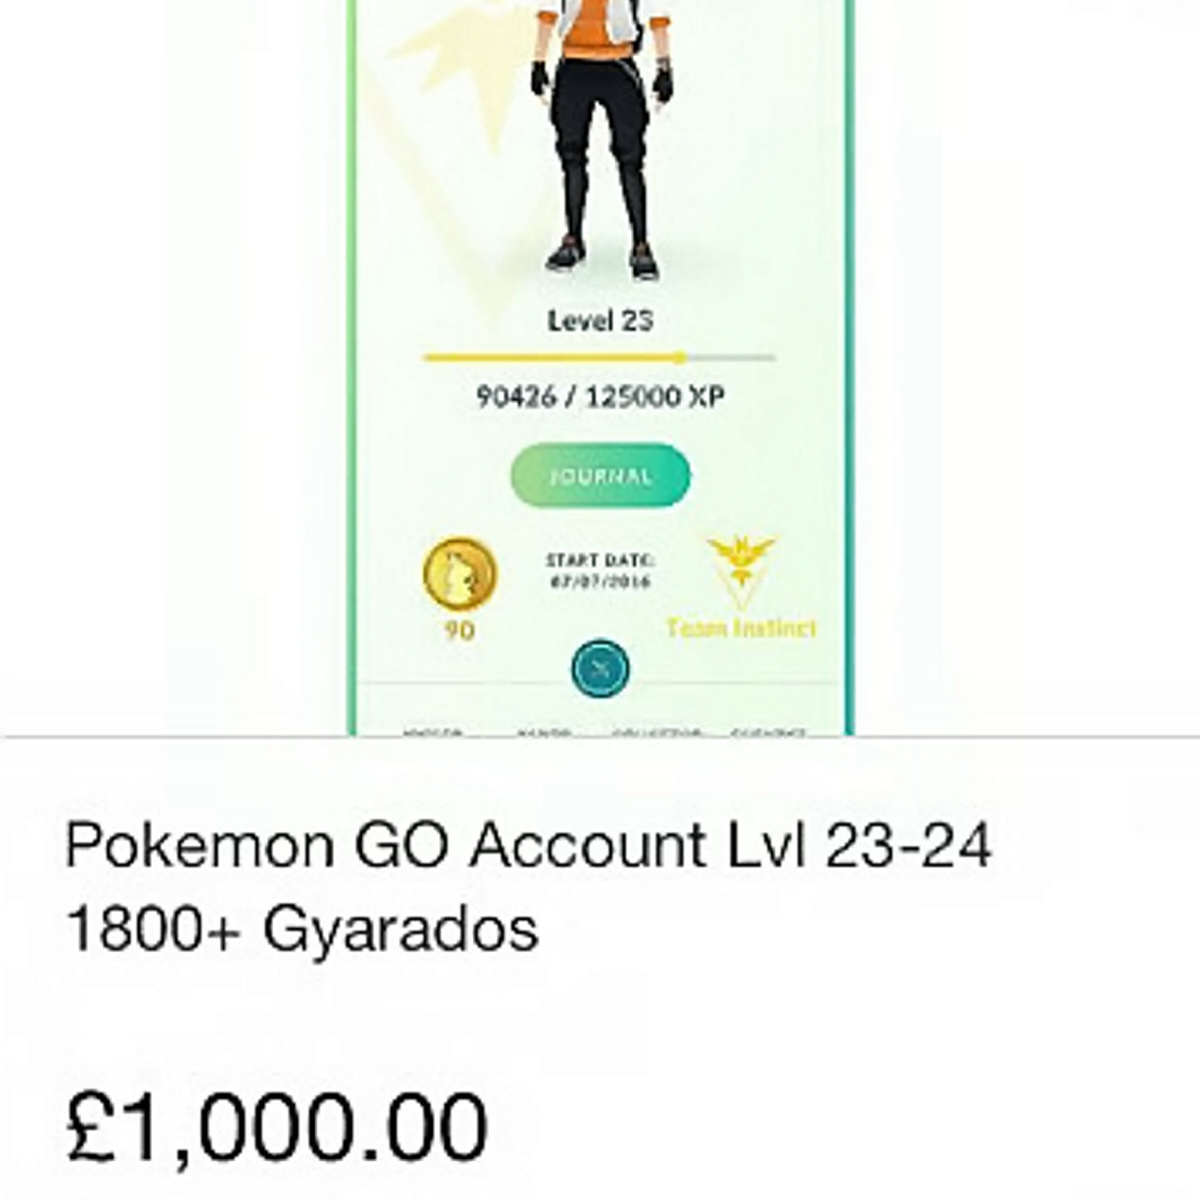 Woman Quits Job To Make Living Playing Pokemon GO, Heres How SWNS POKEMAN PEDRAZA 05